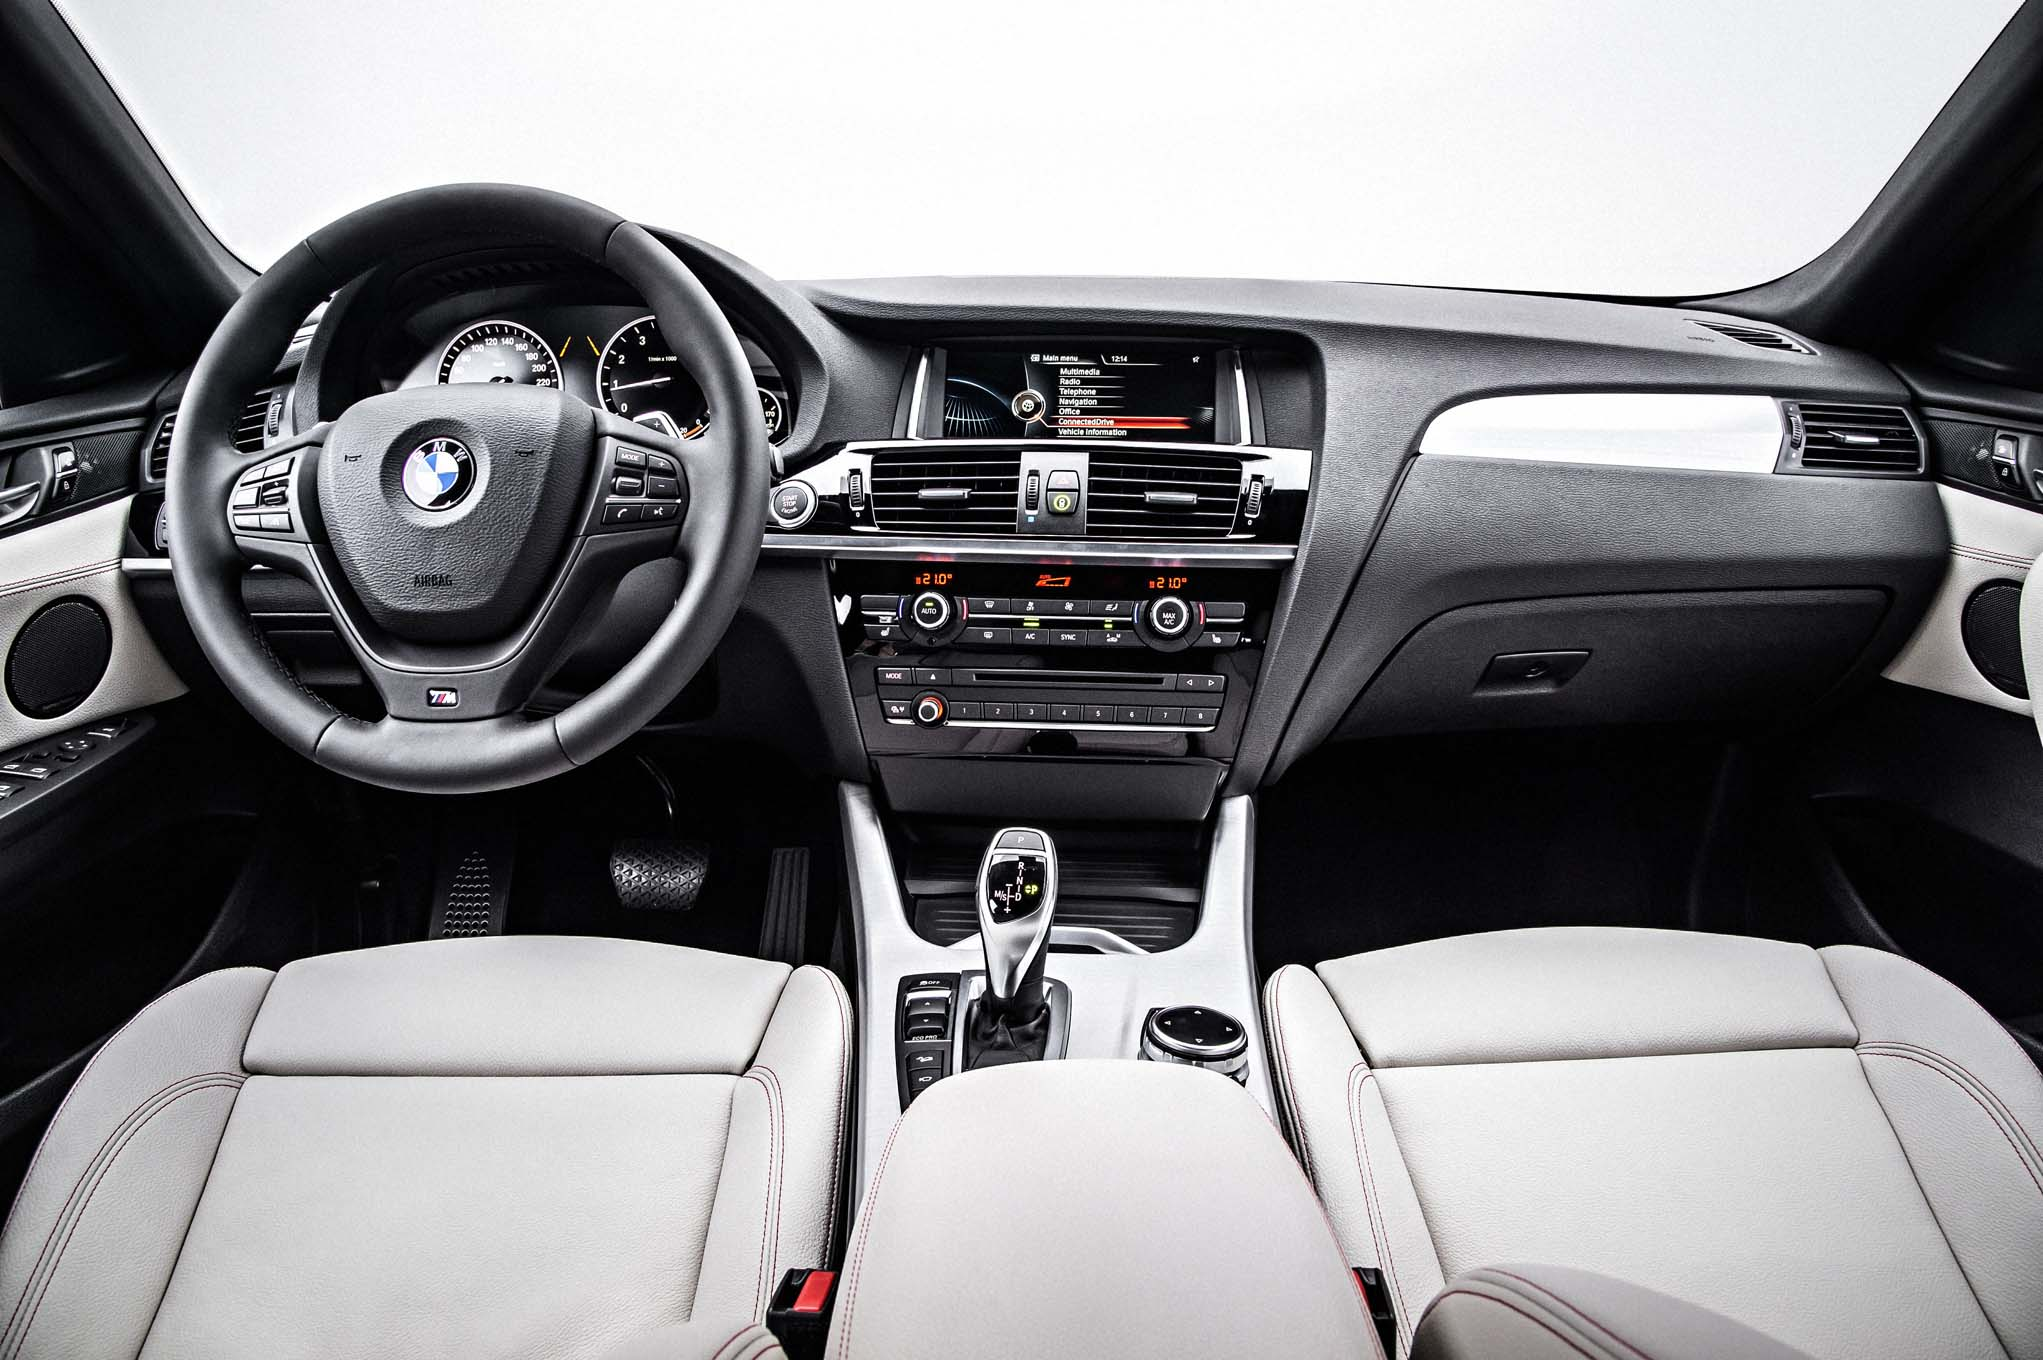 2015 BMW X4 Dashboard and Cockpit